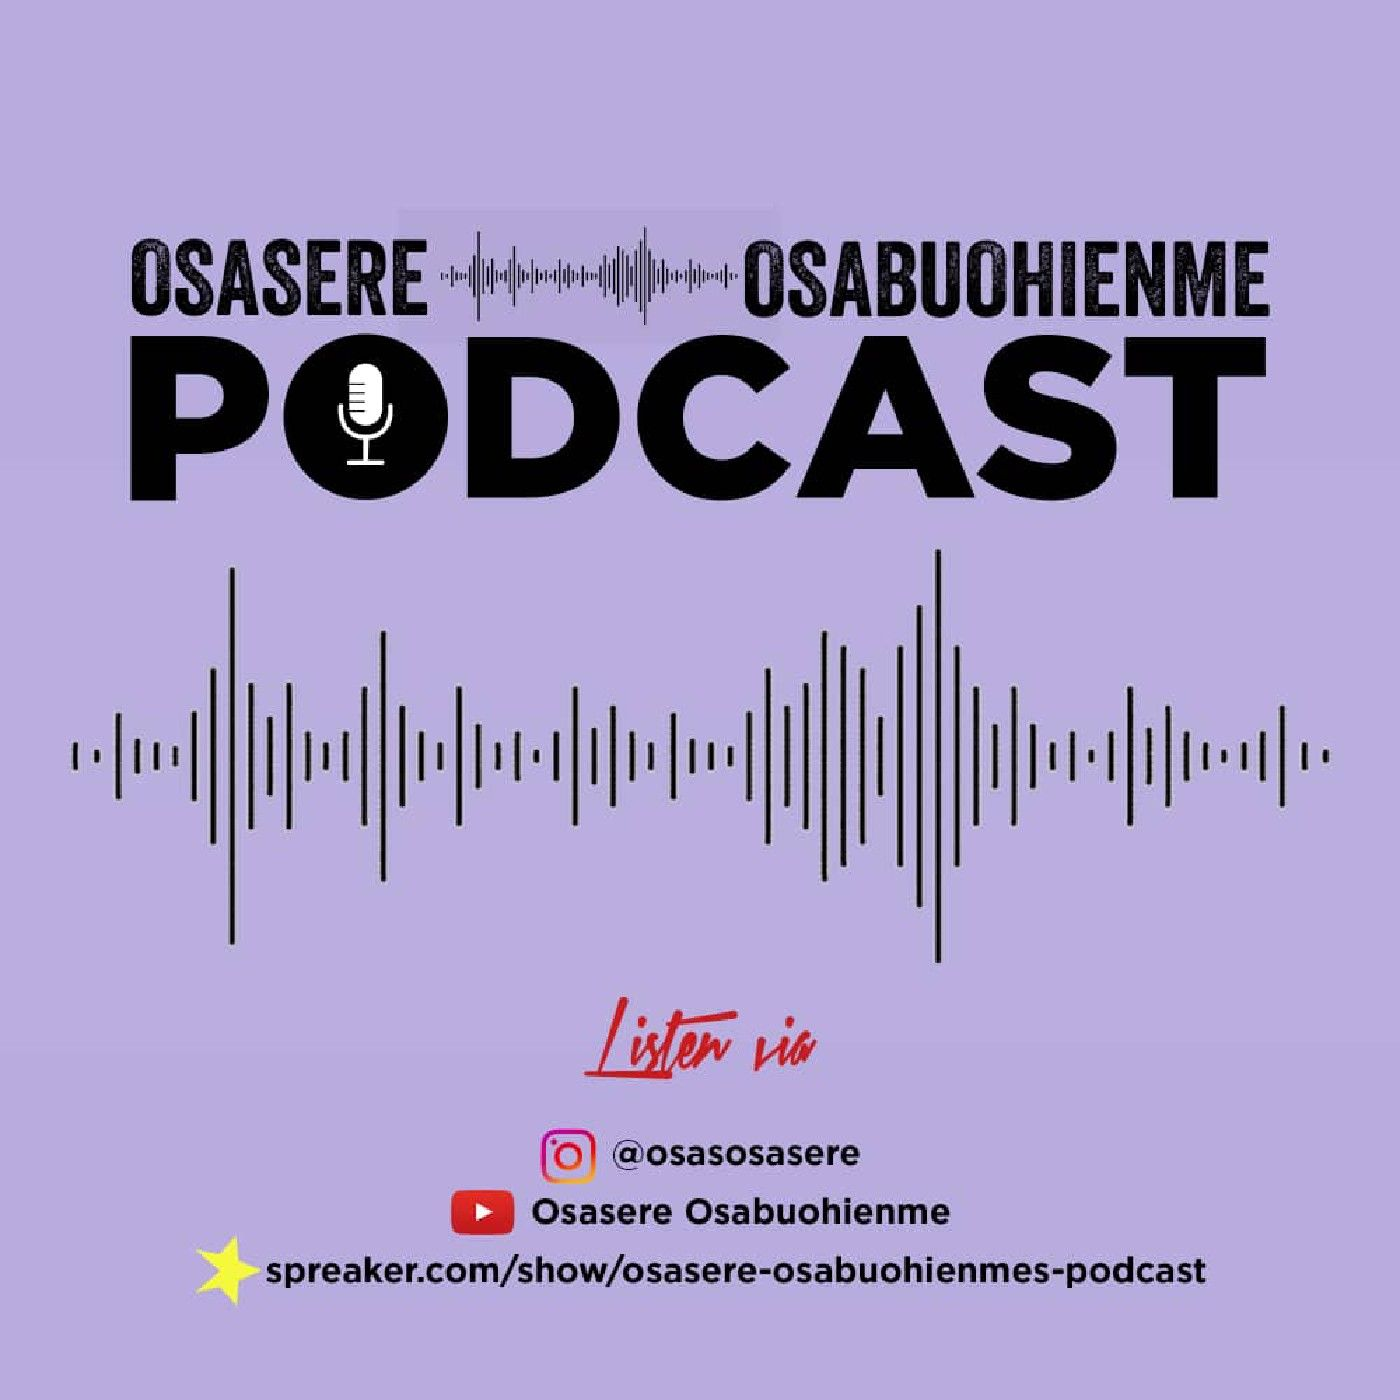 osasere osabuohienme's podcast on Jamit